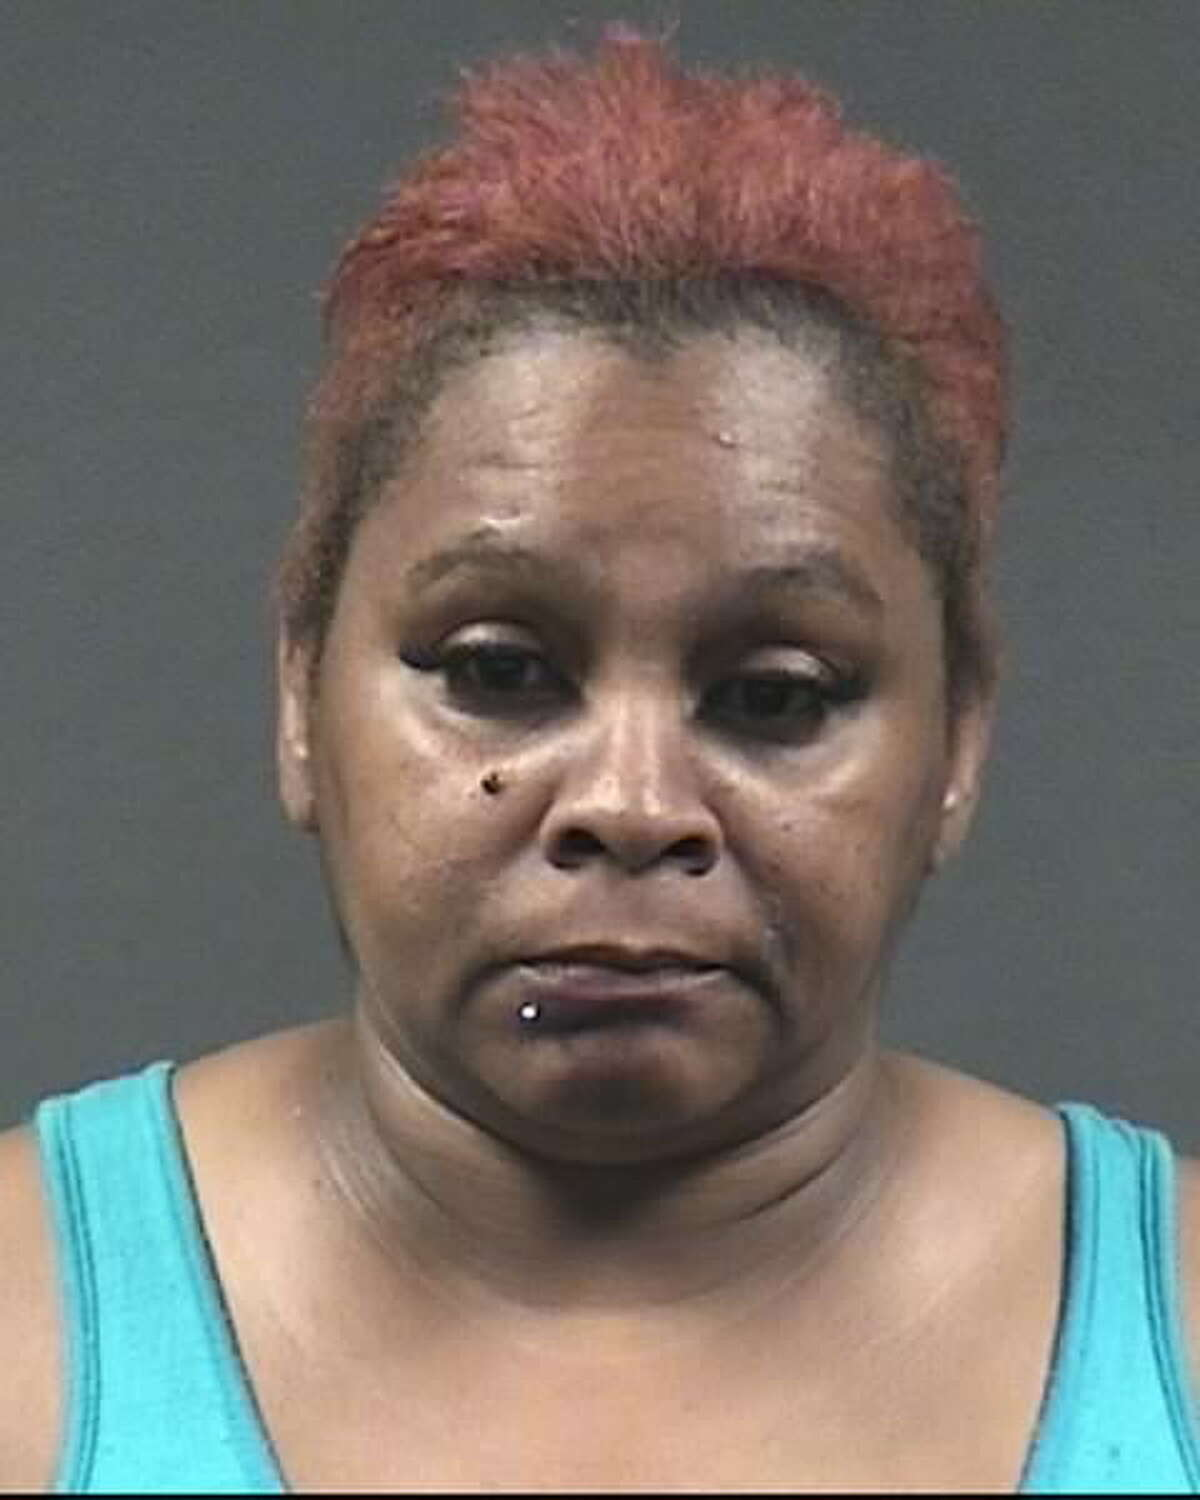 Tracey Rechelle Smith was arrested in April 2018 on a third charge of DWI.